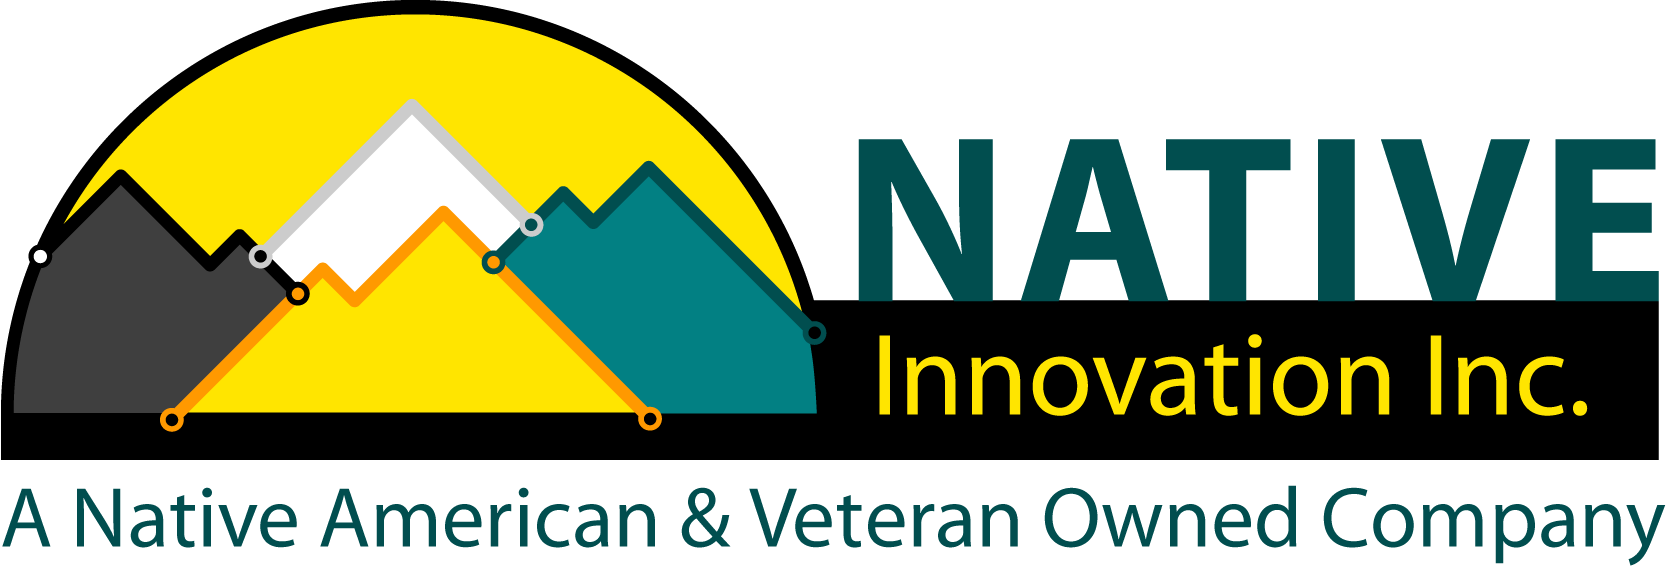 Native Innovation Inc.